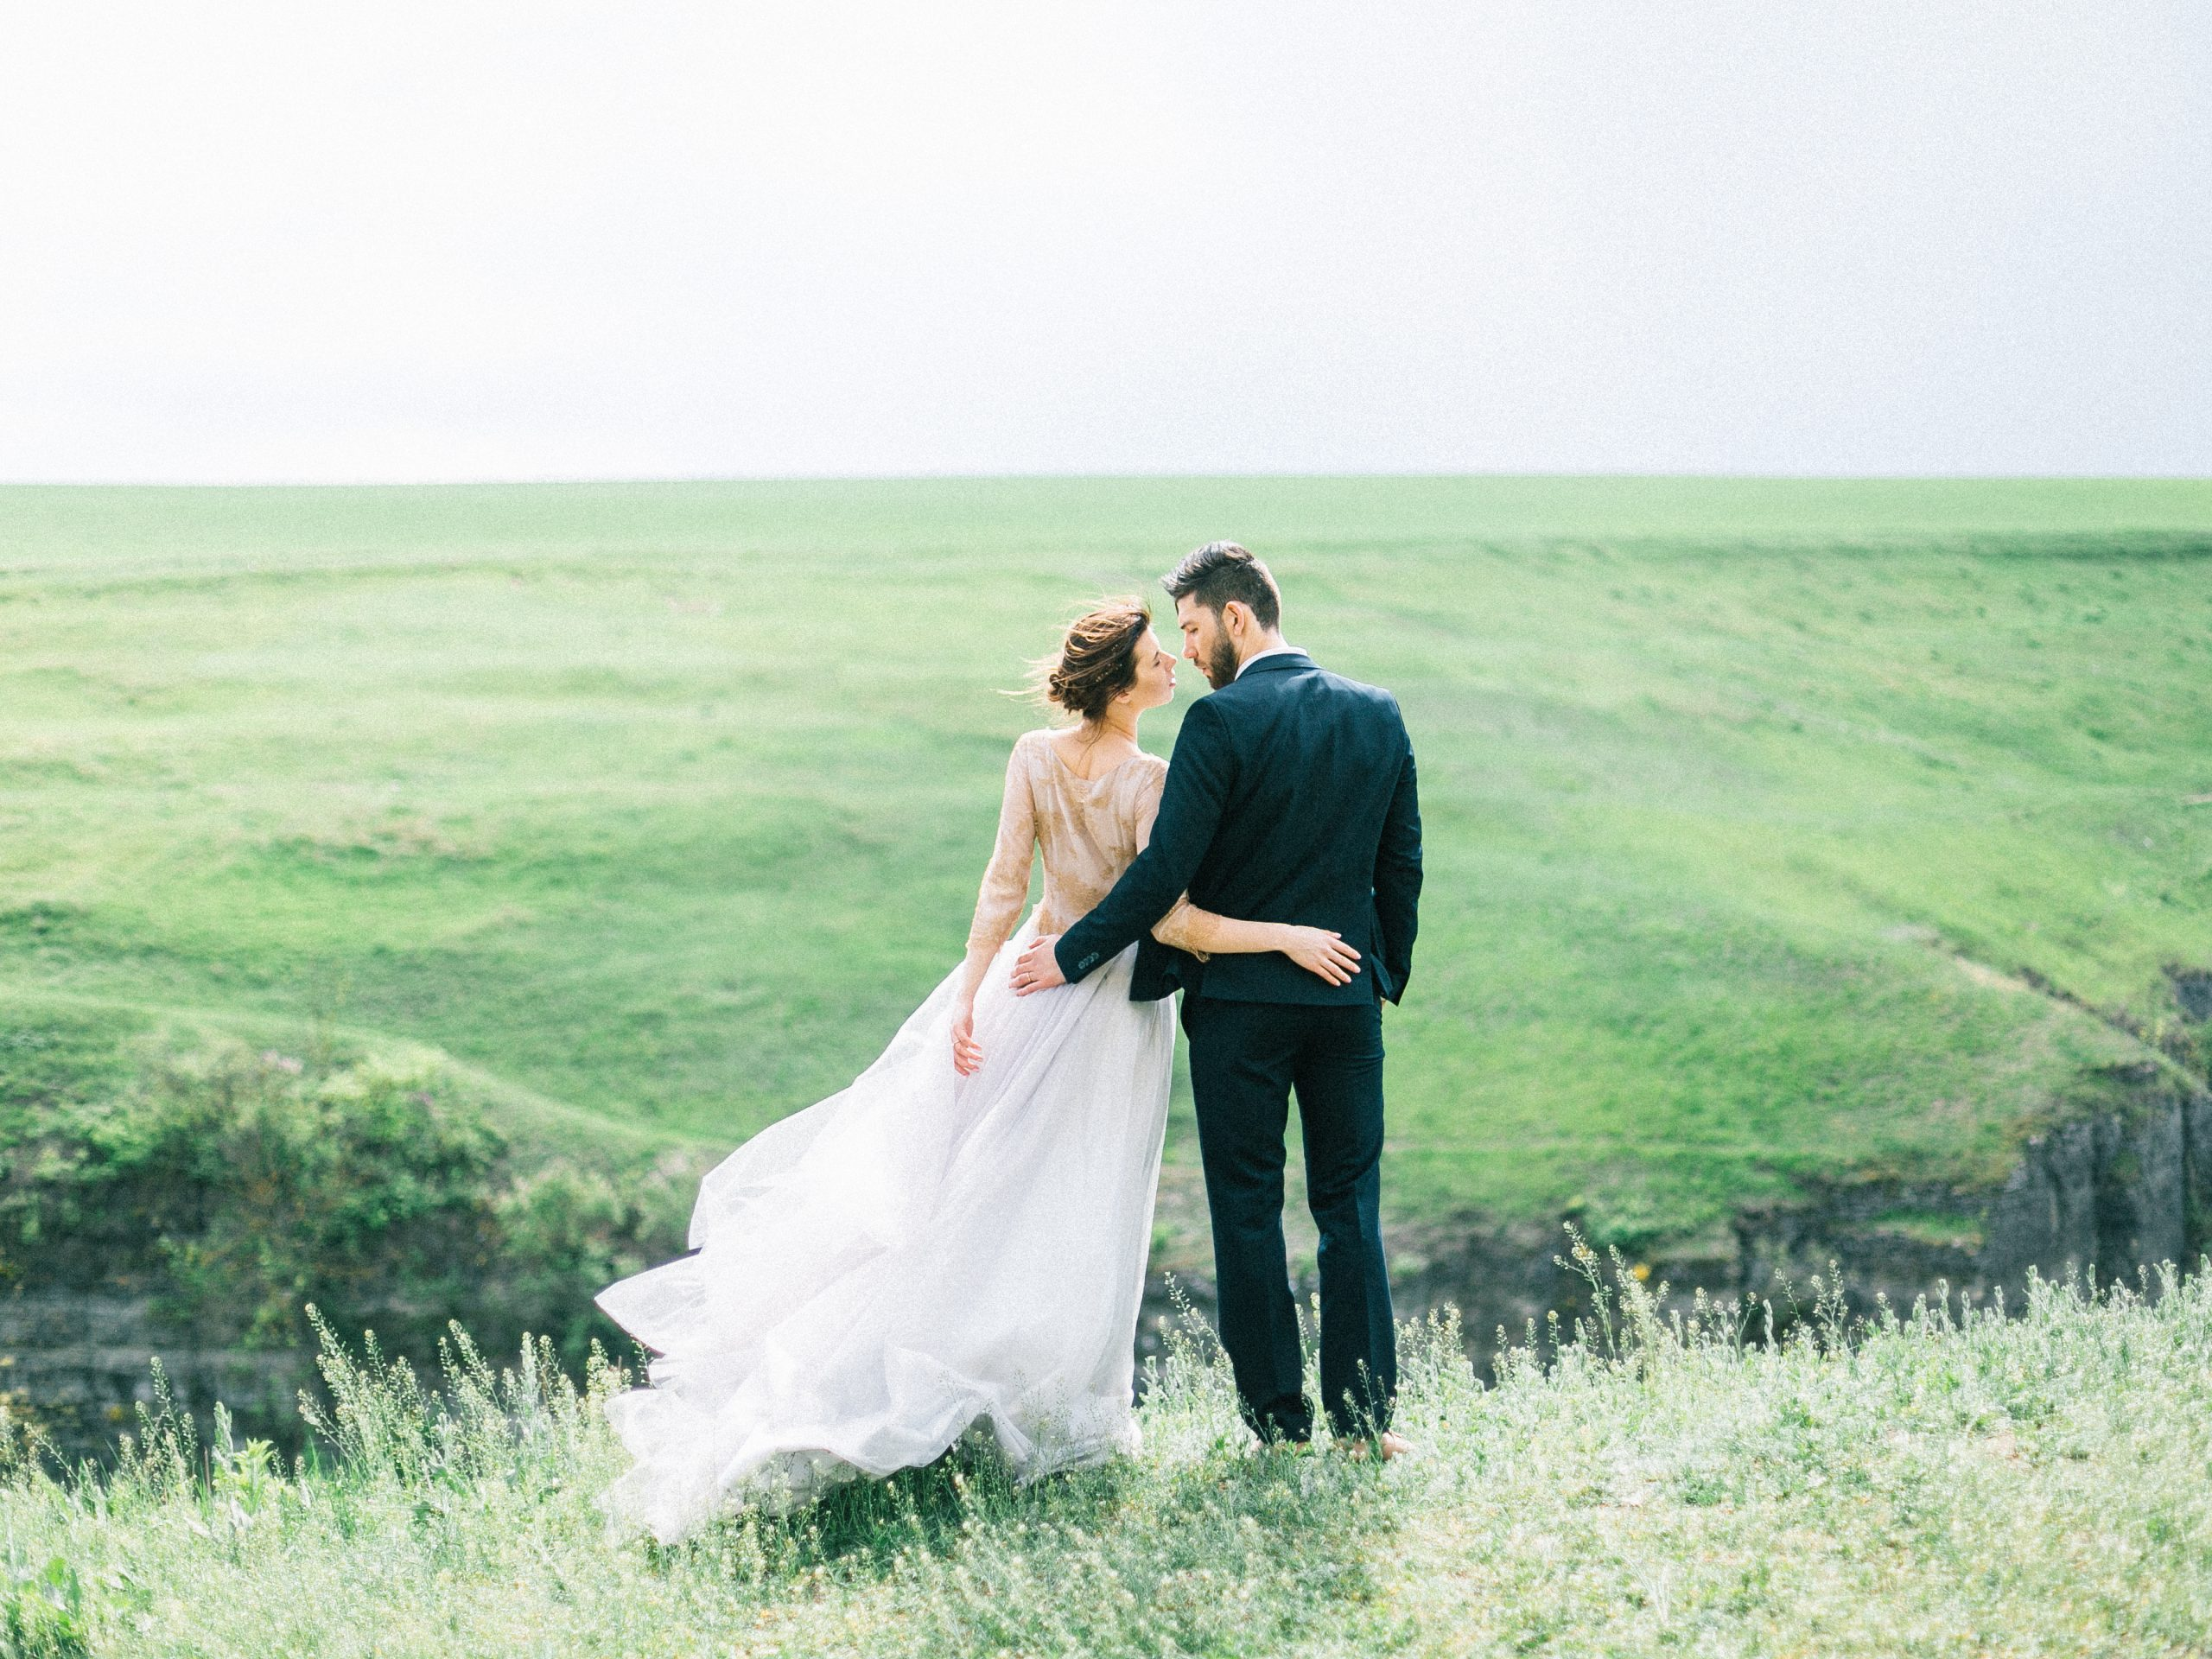 How to Prepare for a Memorable Engagement Photo Shoot